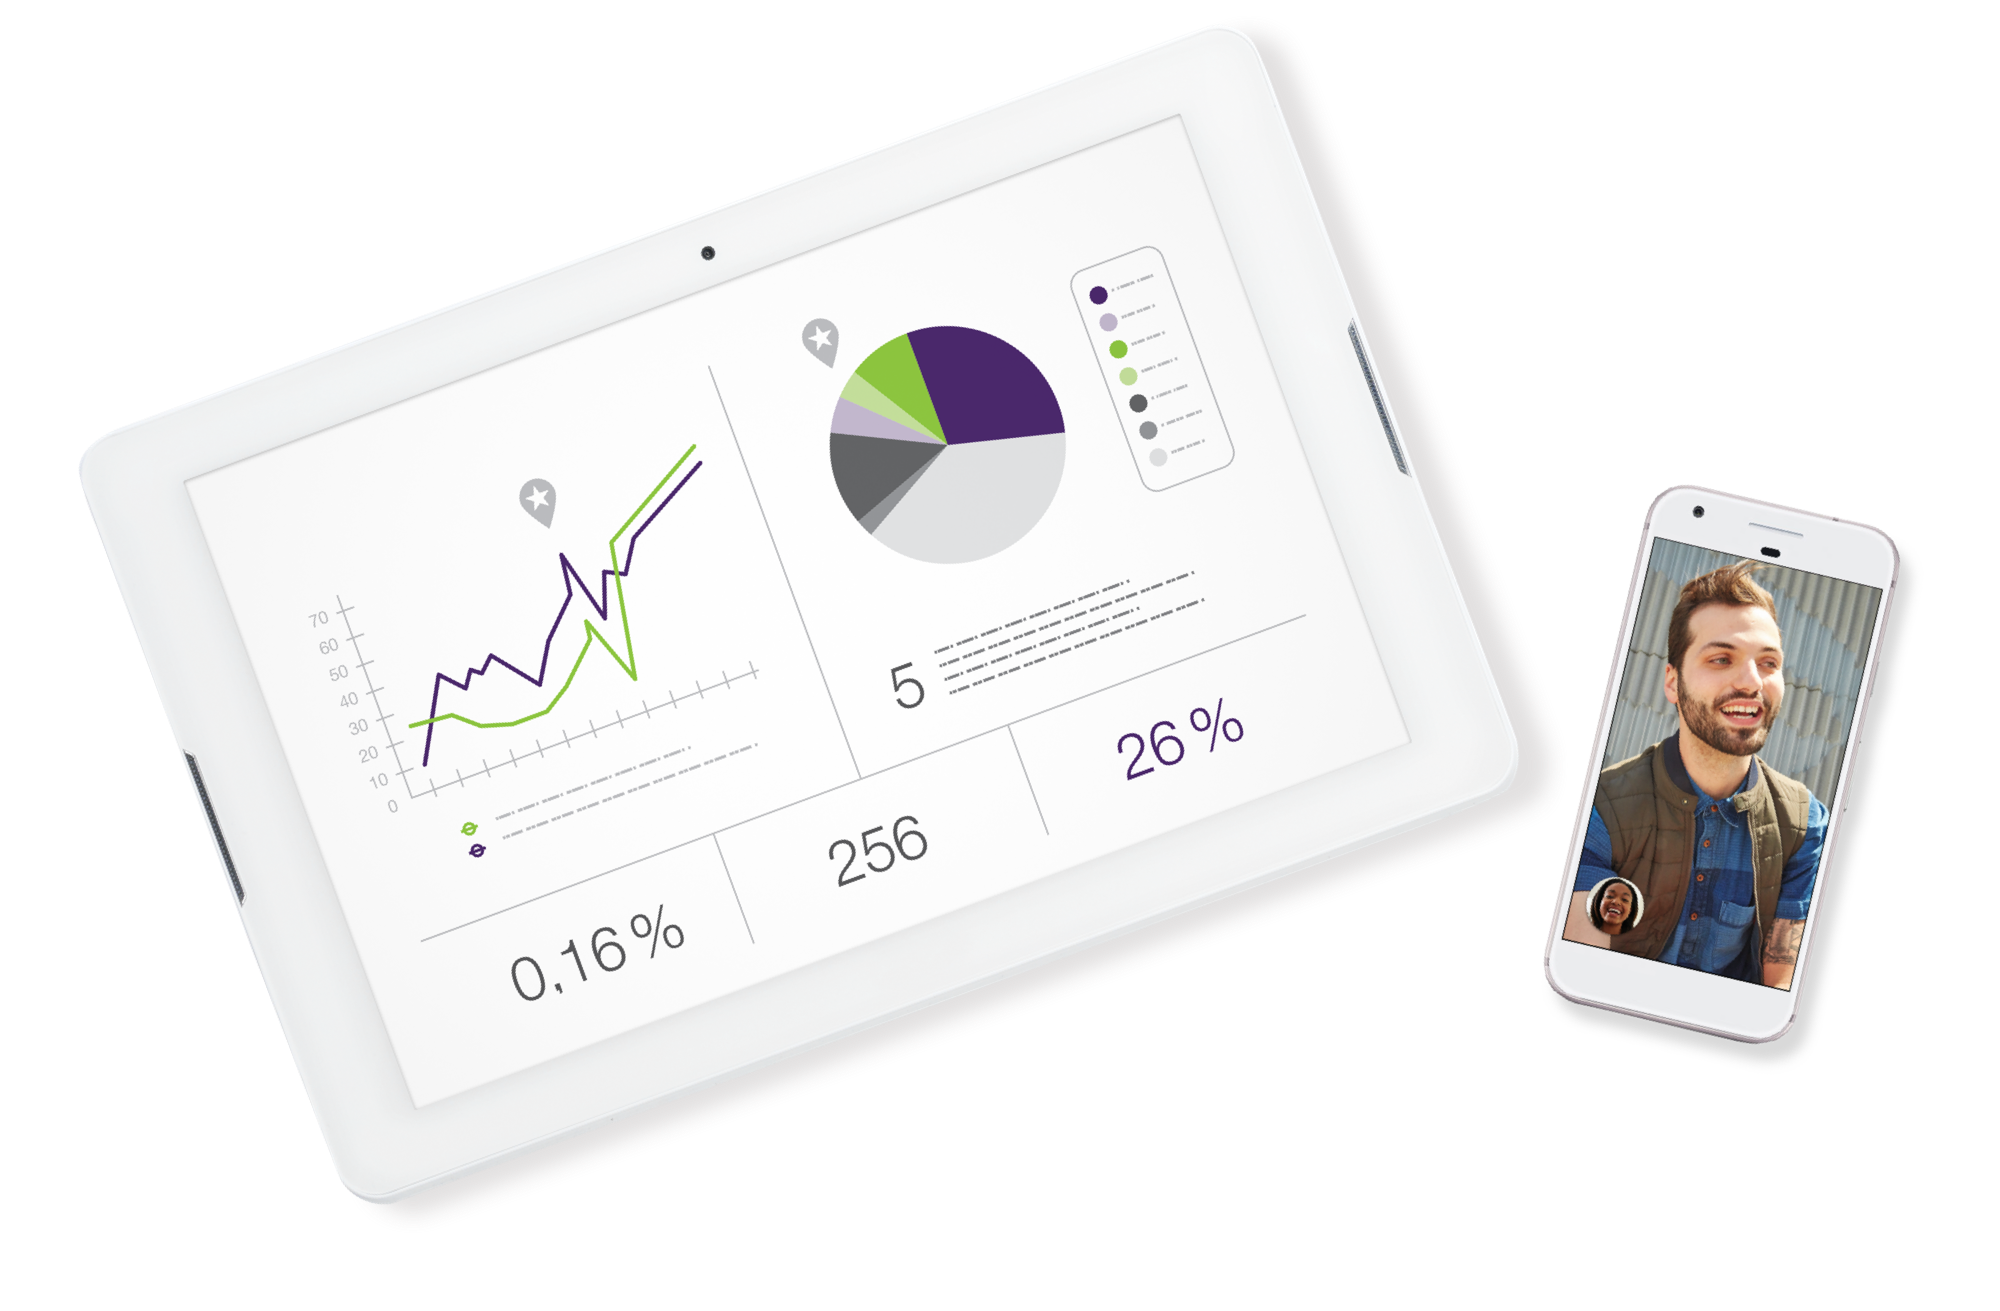 Web Conferencing Solutions, powered by Cisco WebEx | TELUS